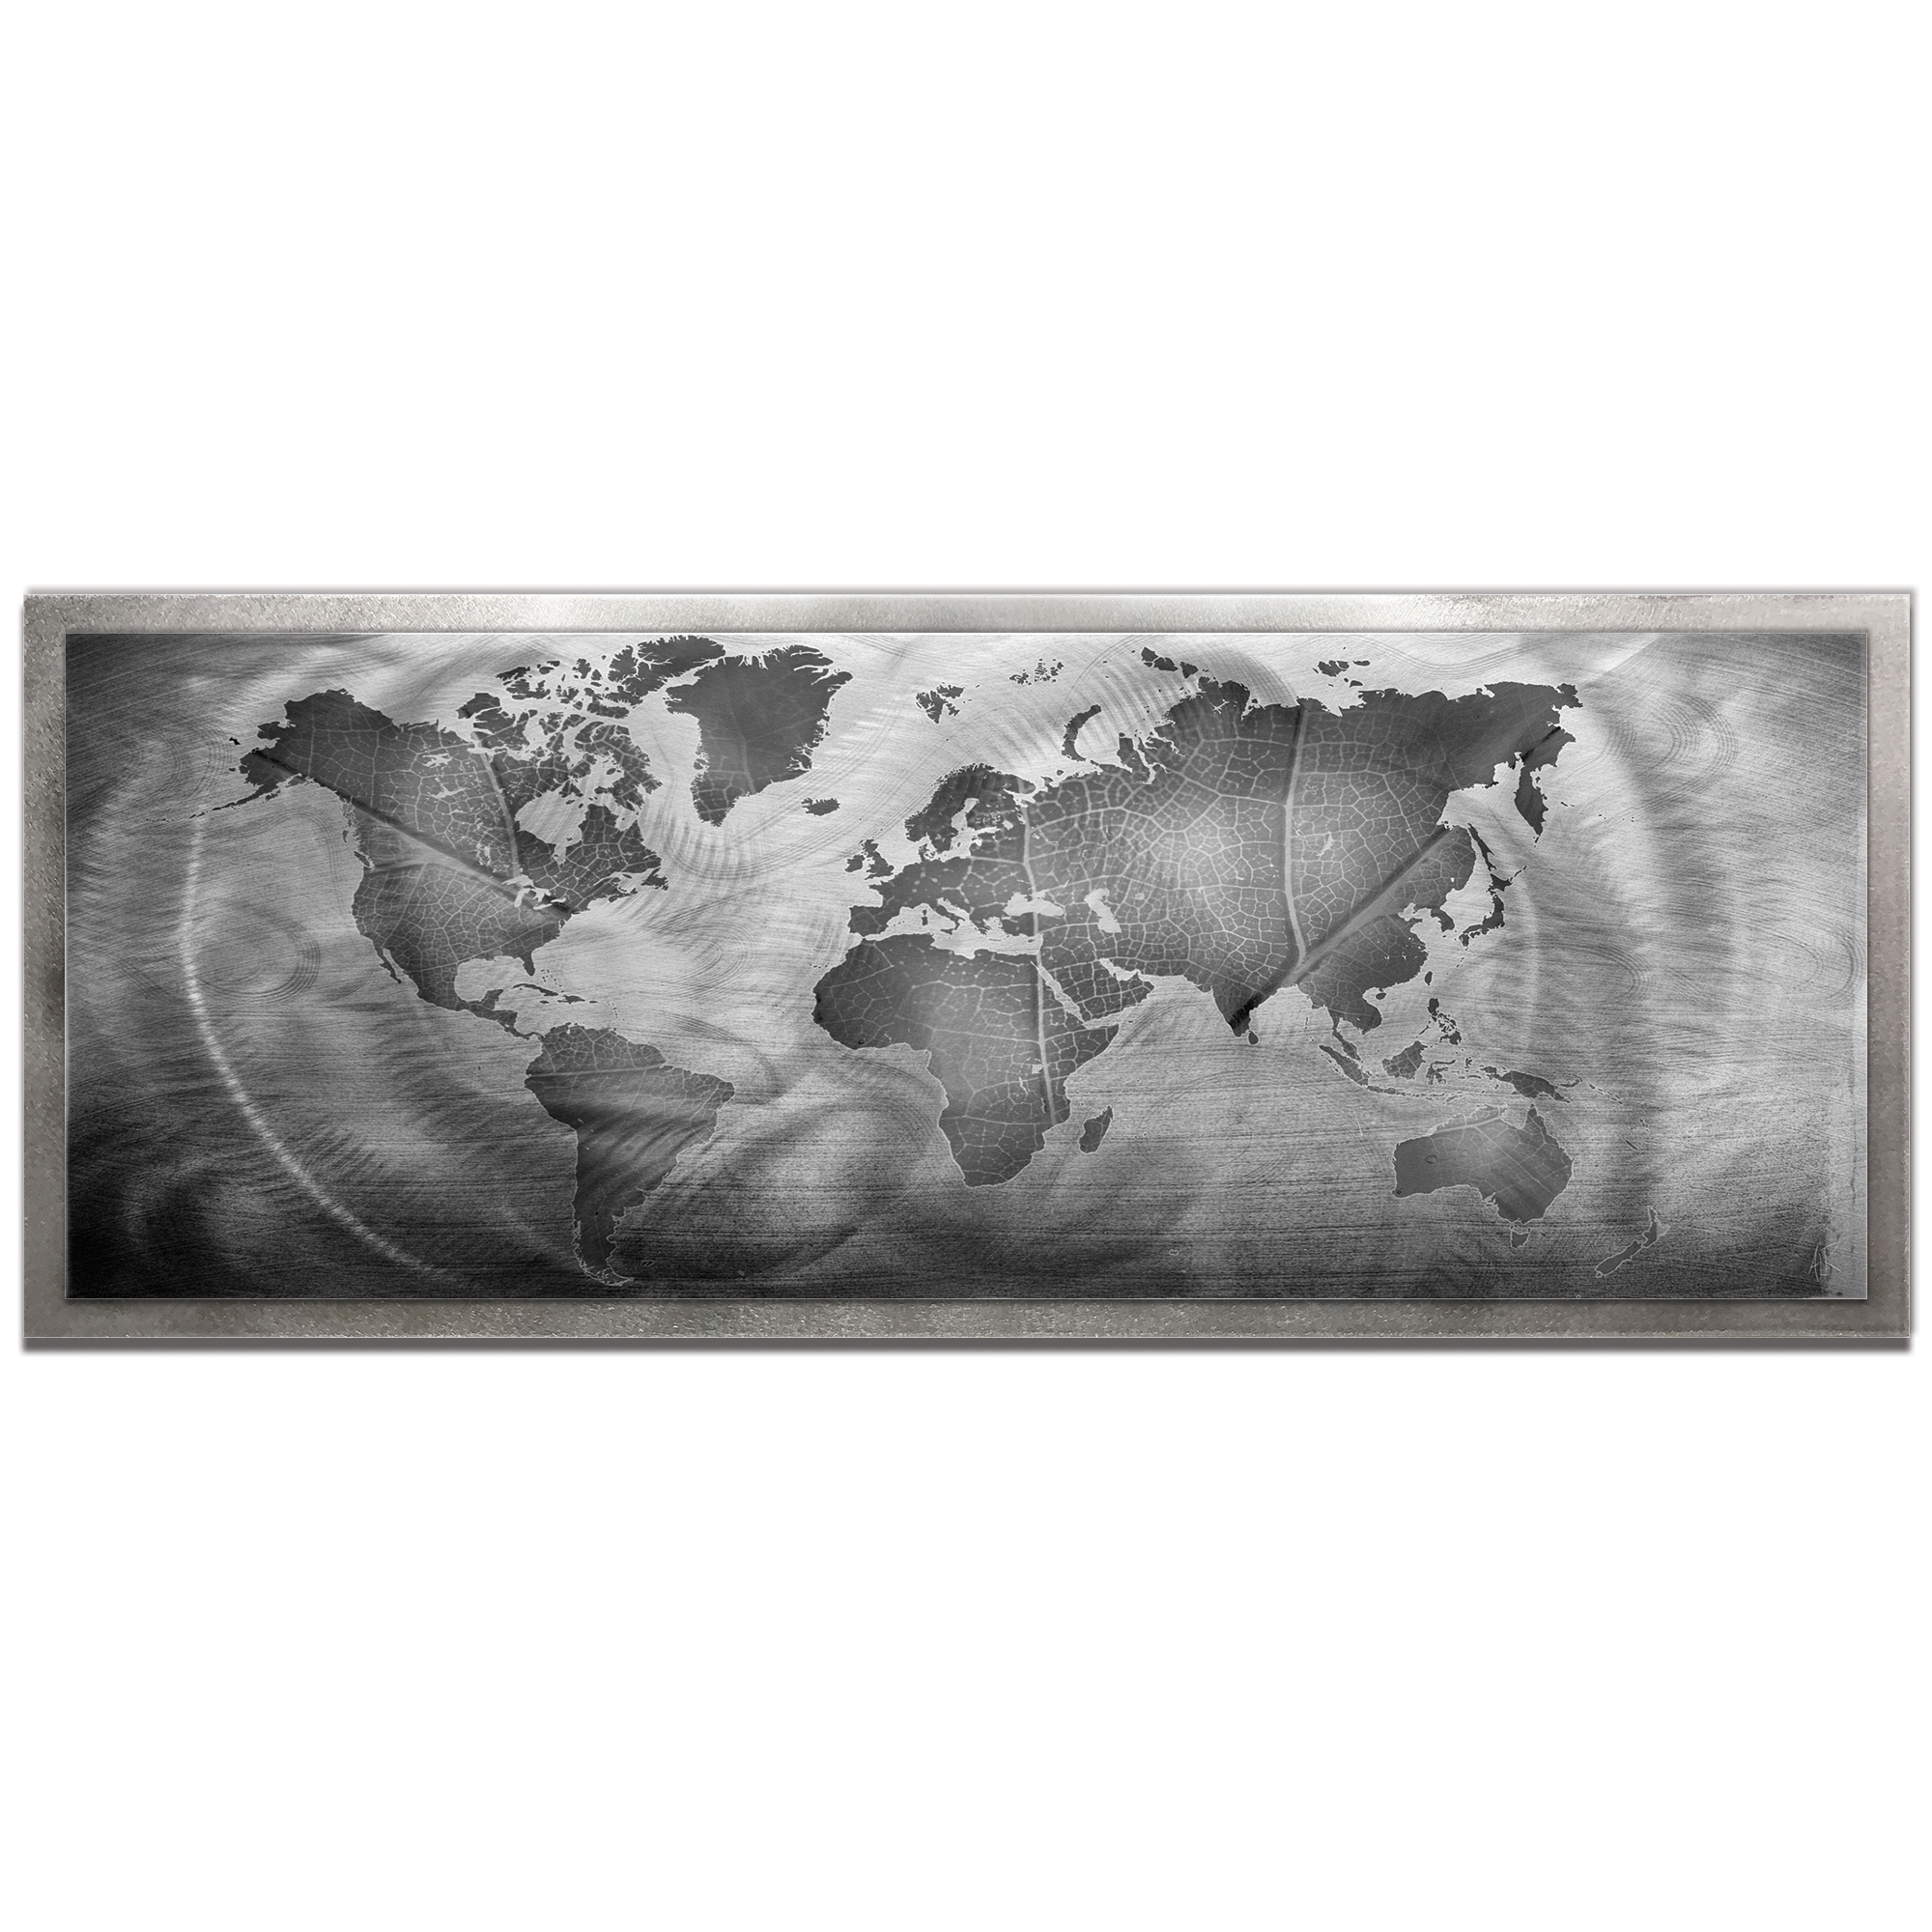 Amber LaRosa 'Monochrome Land and Sea Framed' 48in x 19in Traditional World Map Art on Colored Metal